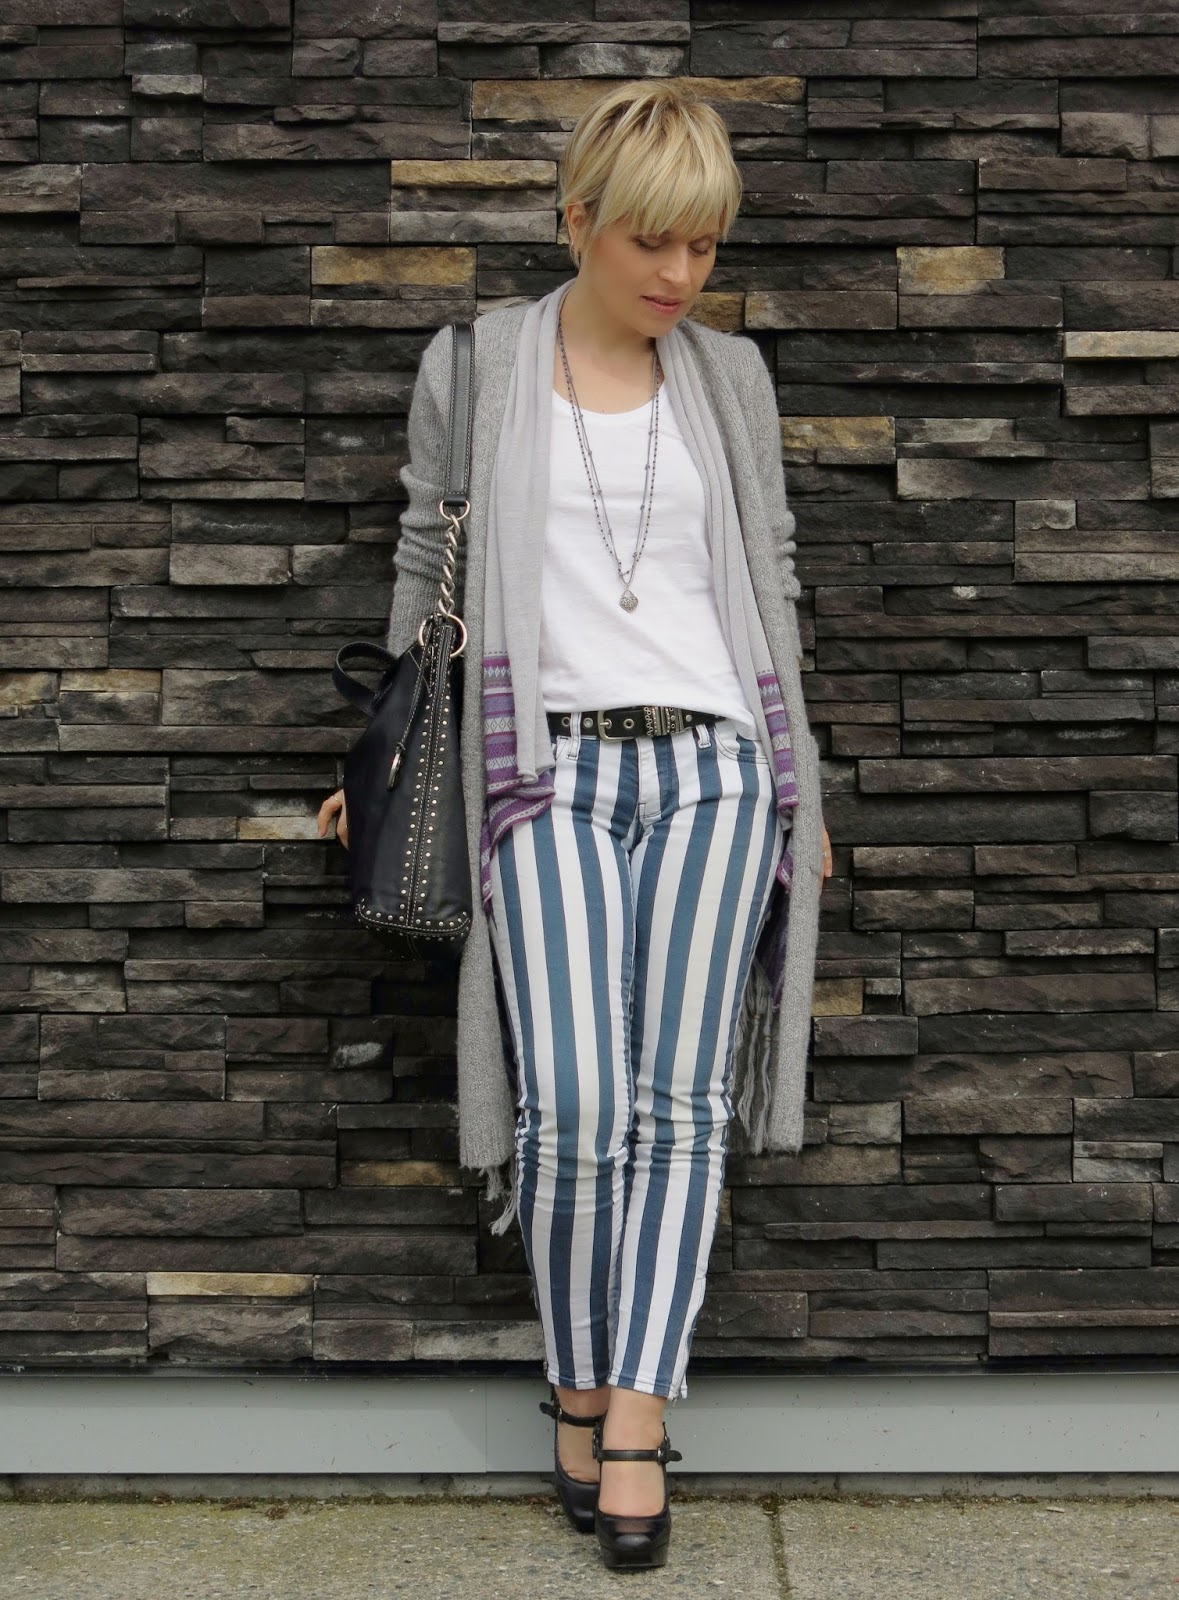 styling a long cardigan with striped skinny jeans and platform shoes